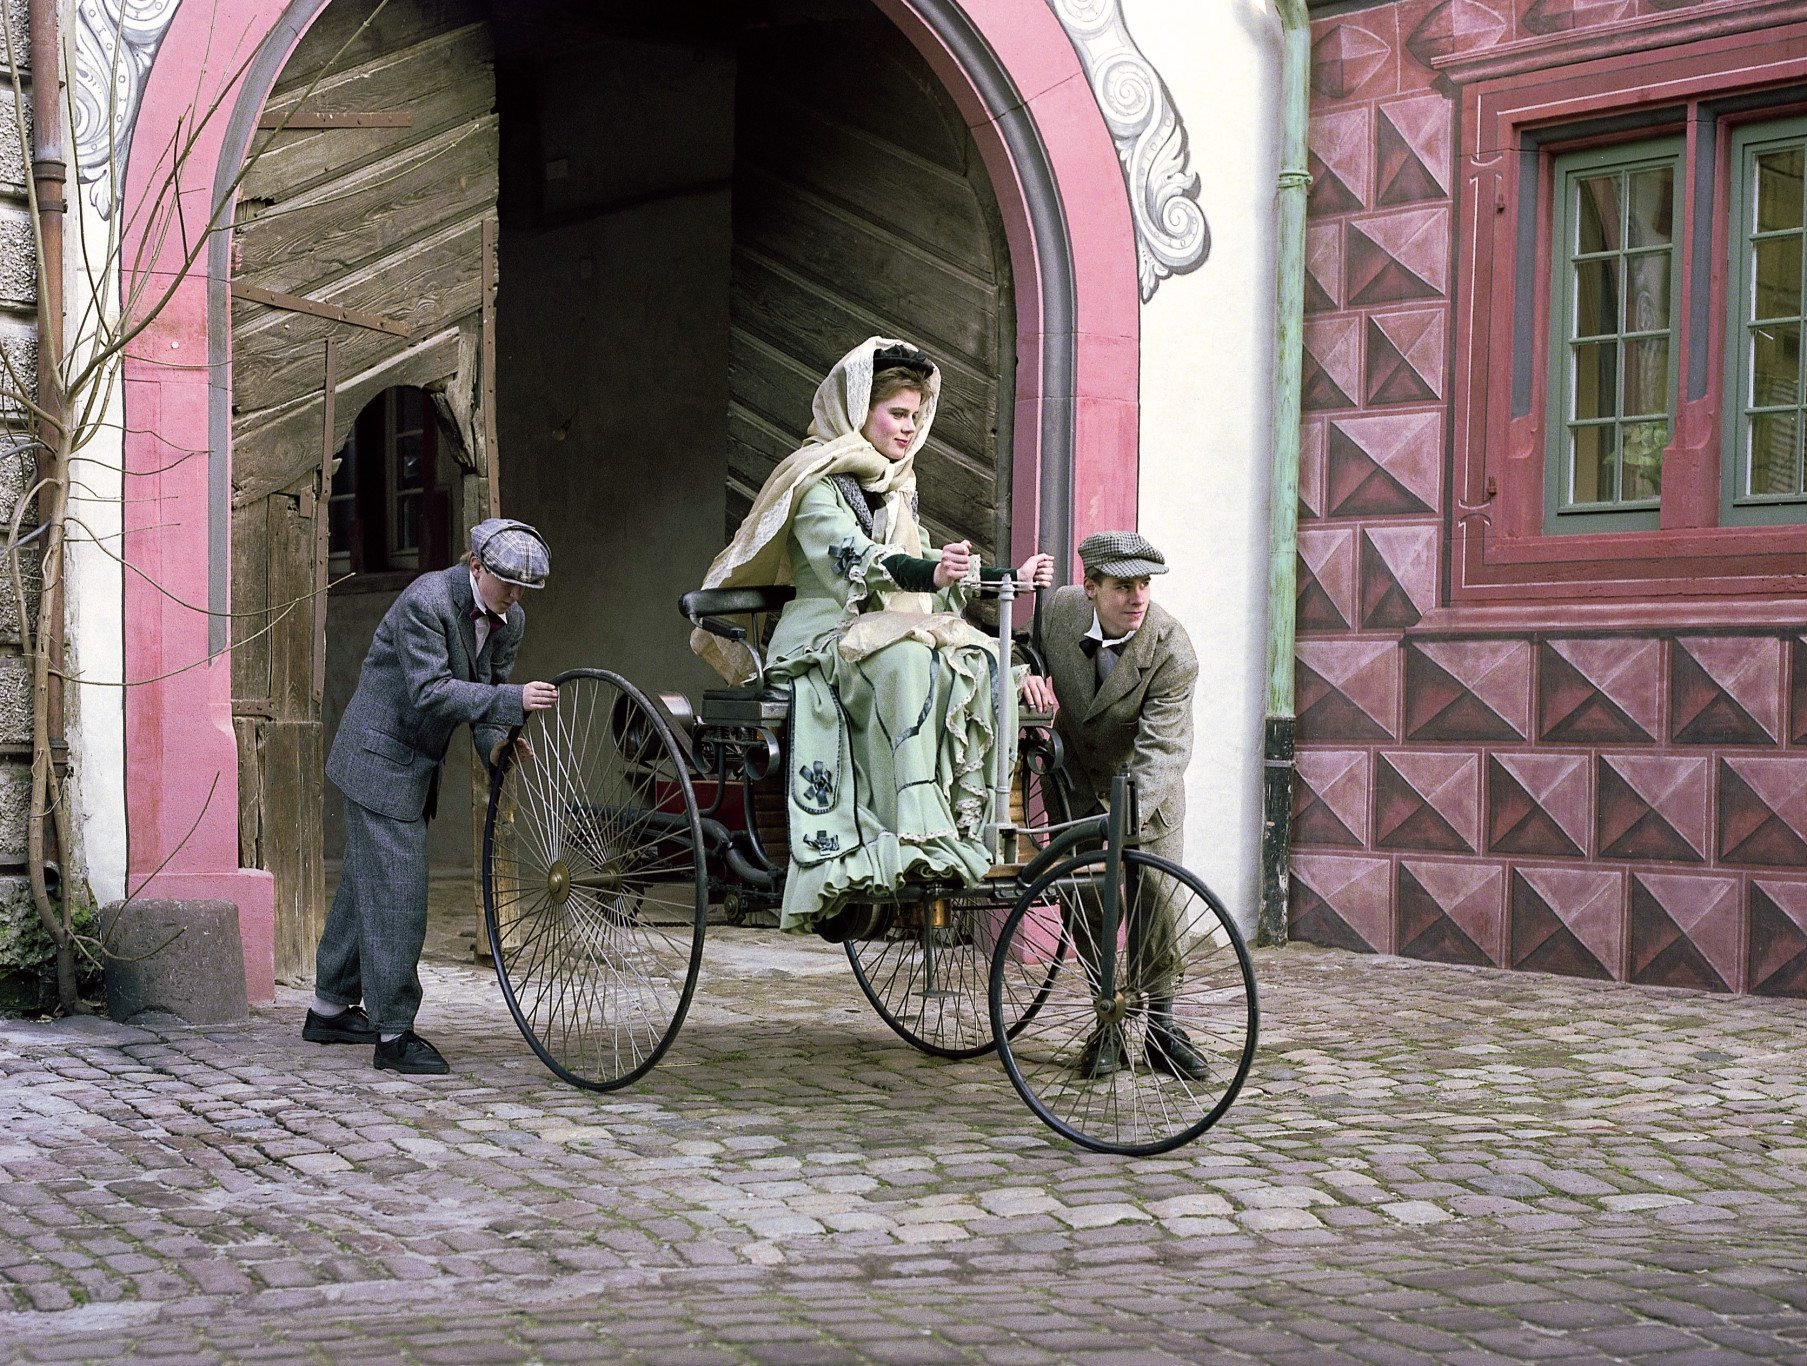 recreation of Bertha Benz's historic drive